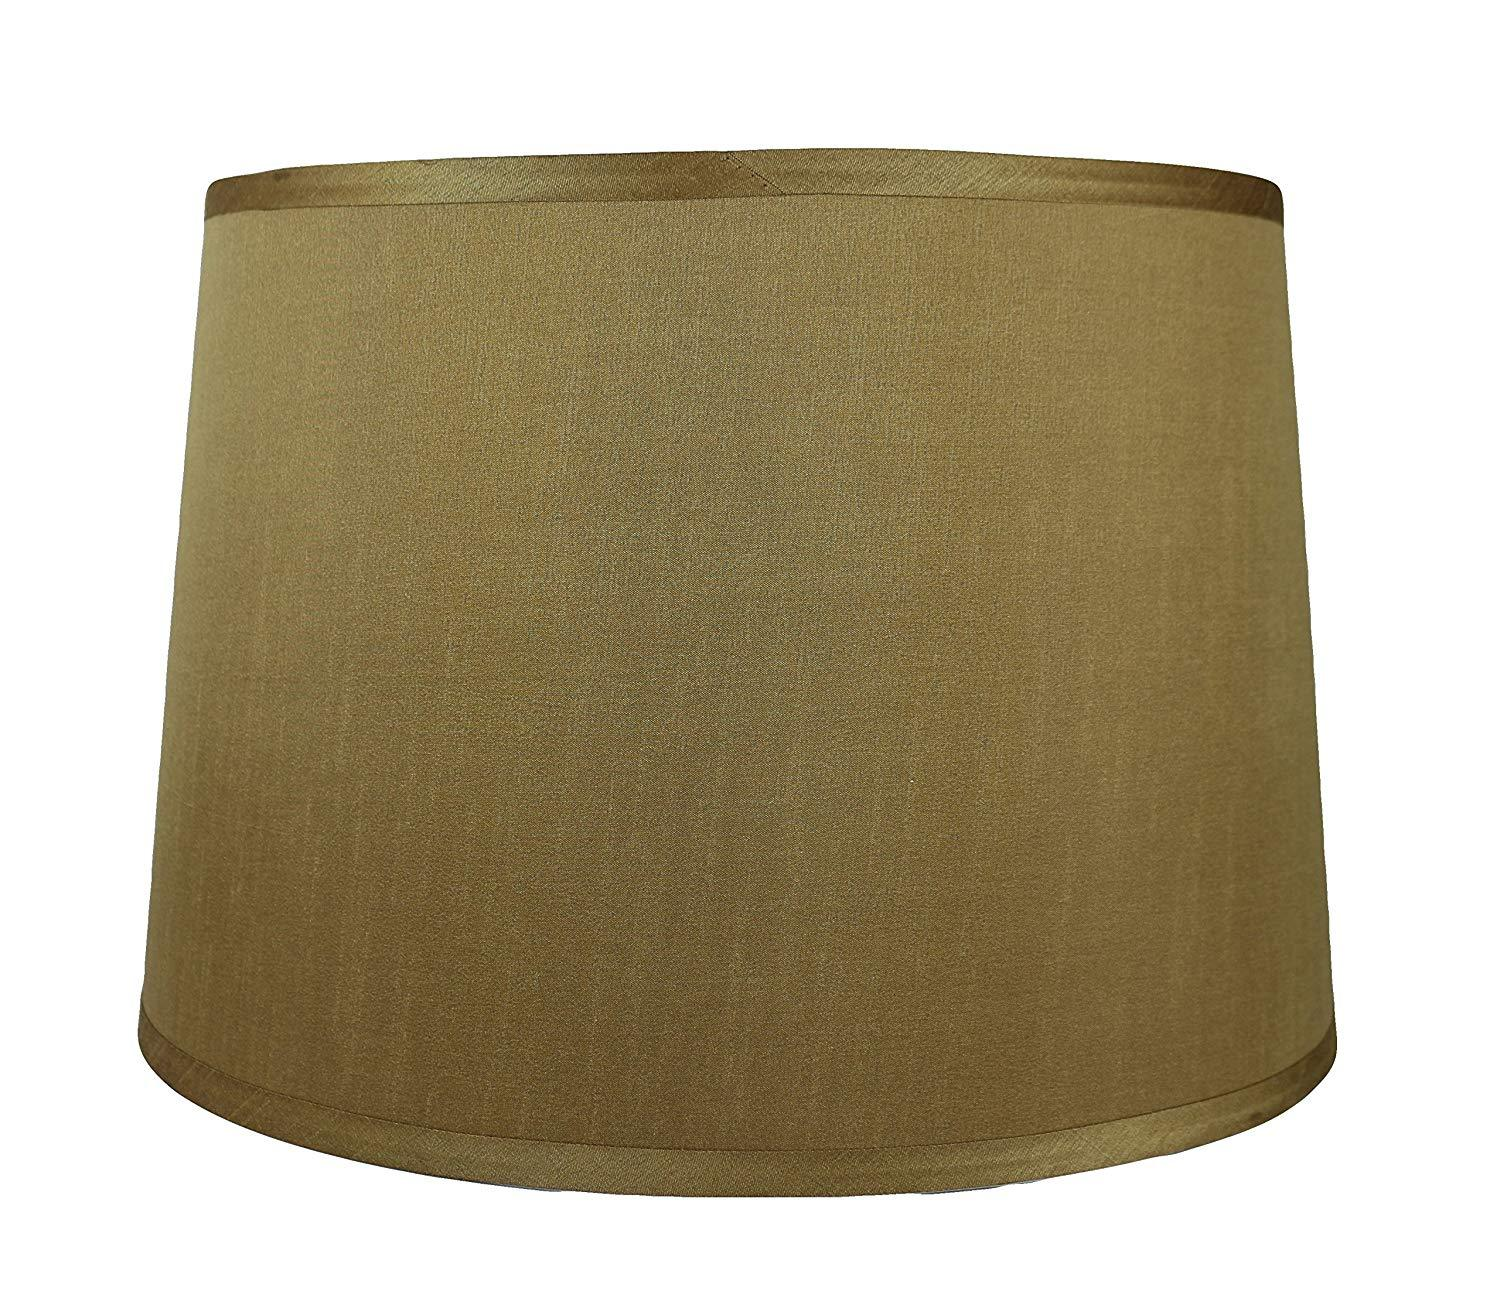 Urbanest French Drum Lampshade, Faux Silk, 12-inch by 14-inch by 10-inch, Spider Washer Fitter